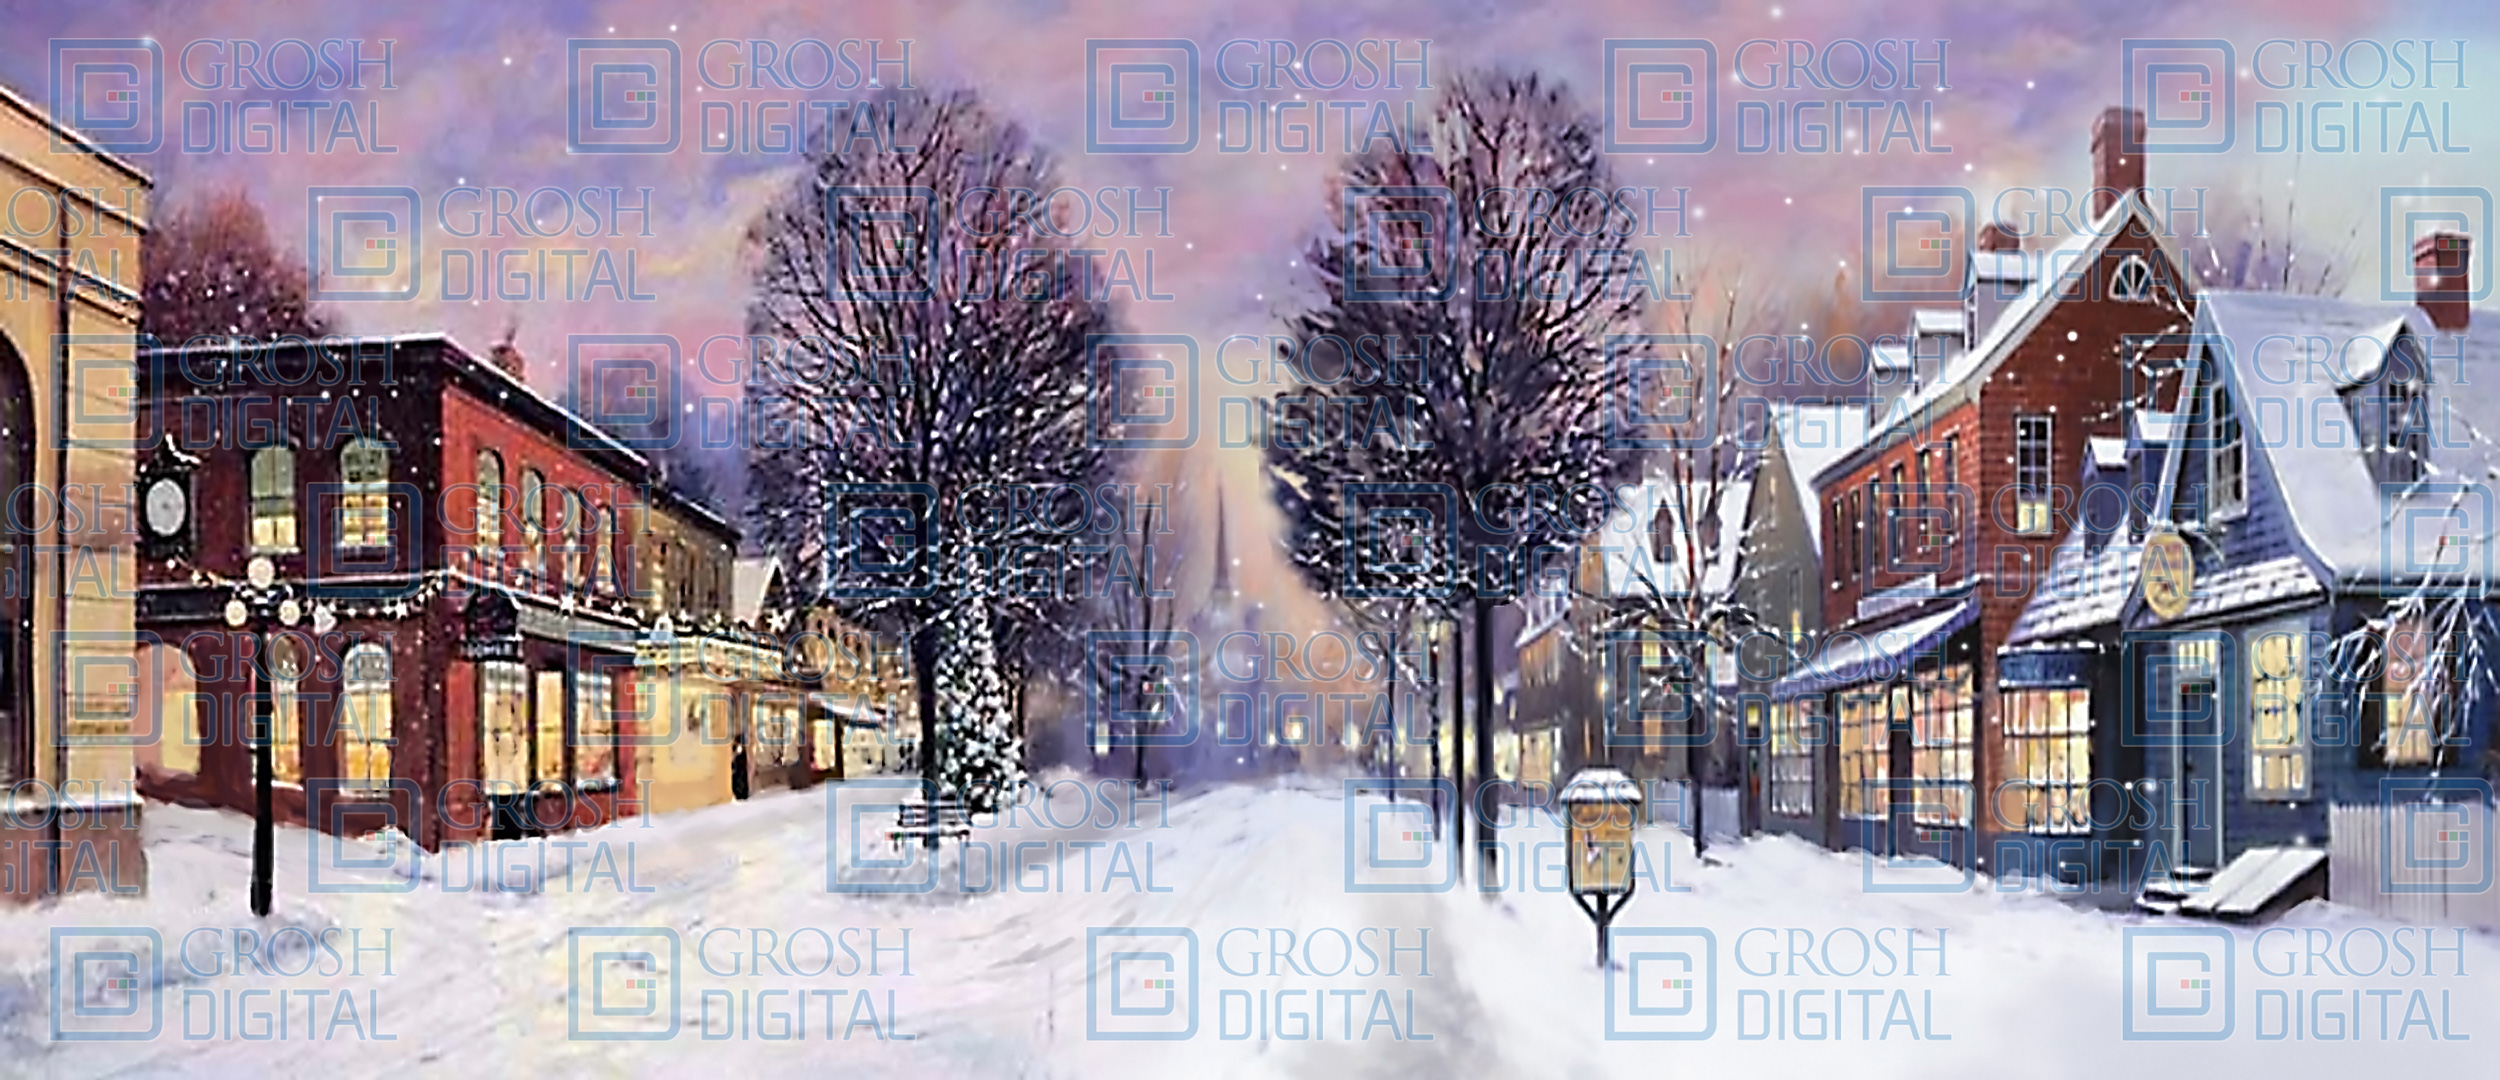 Winter Small Town Projected Backdrop for Holiday, Snows, Streets, Towns, Villages